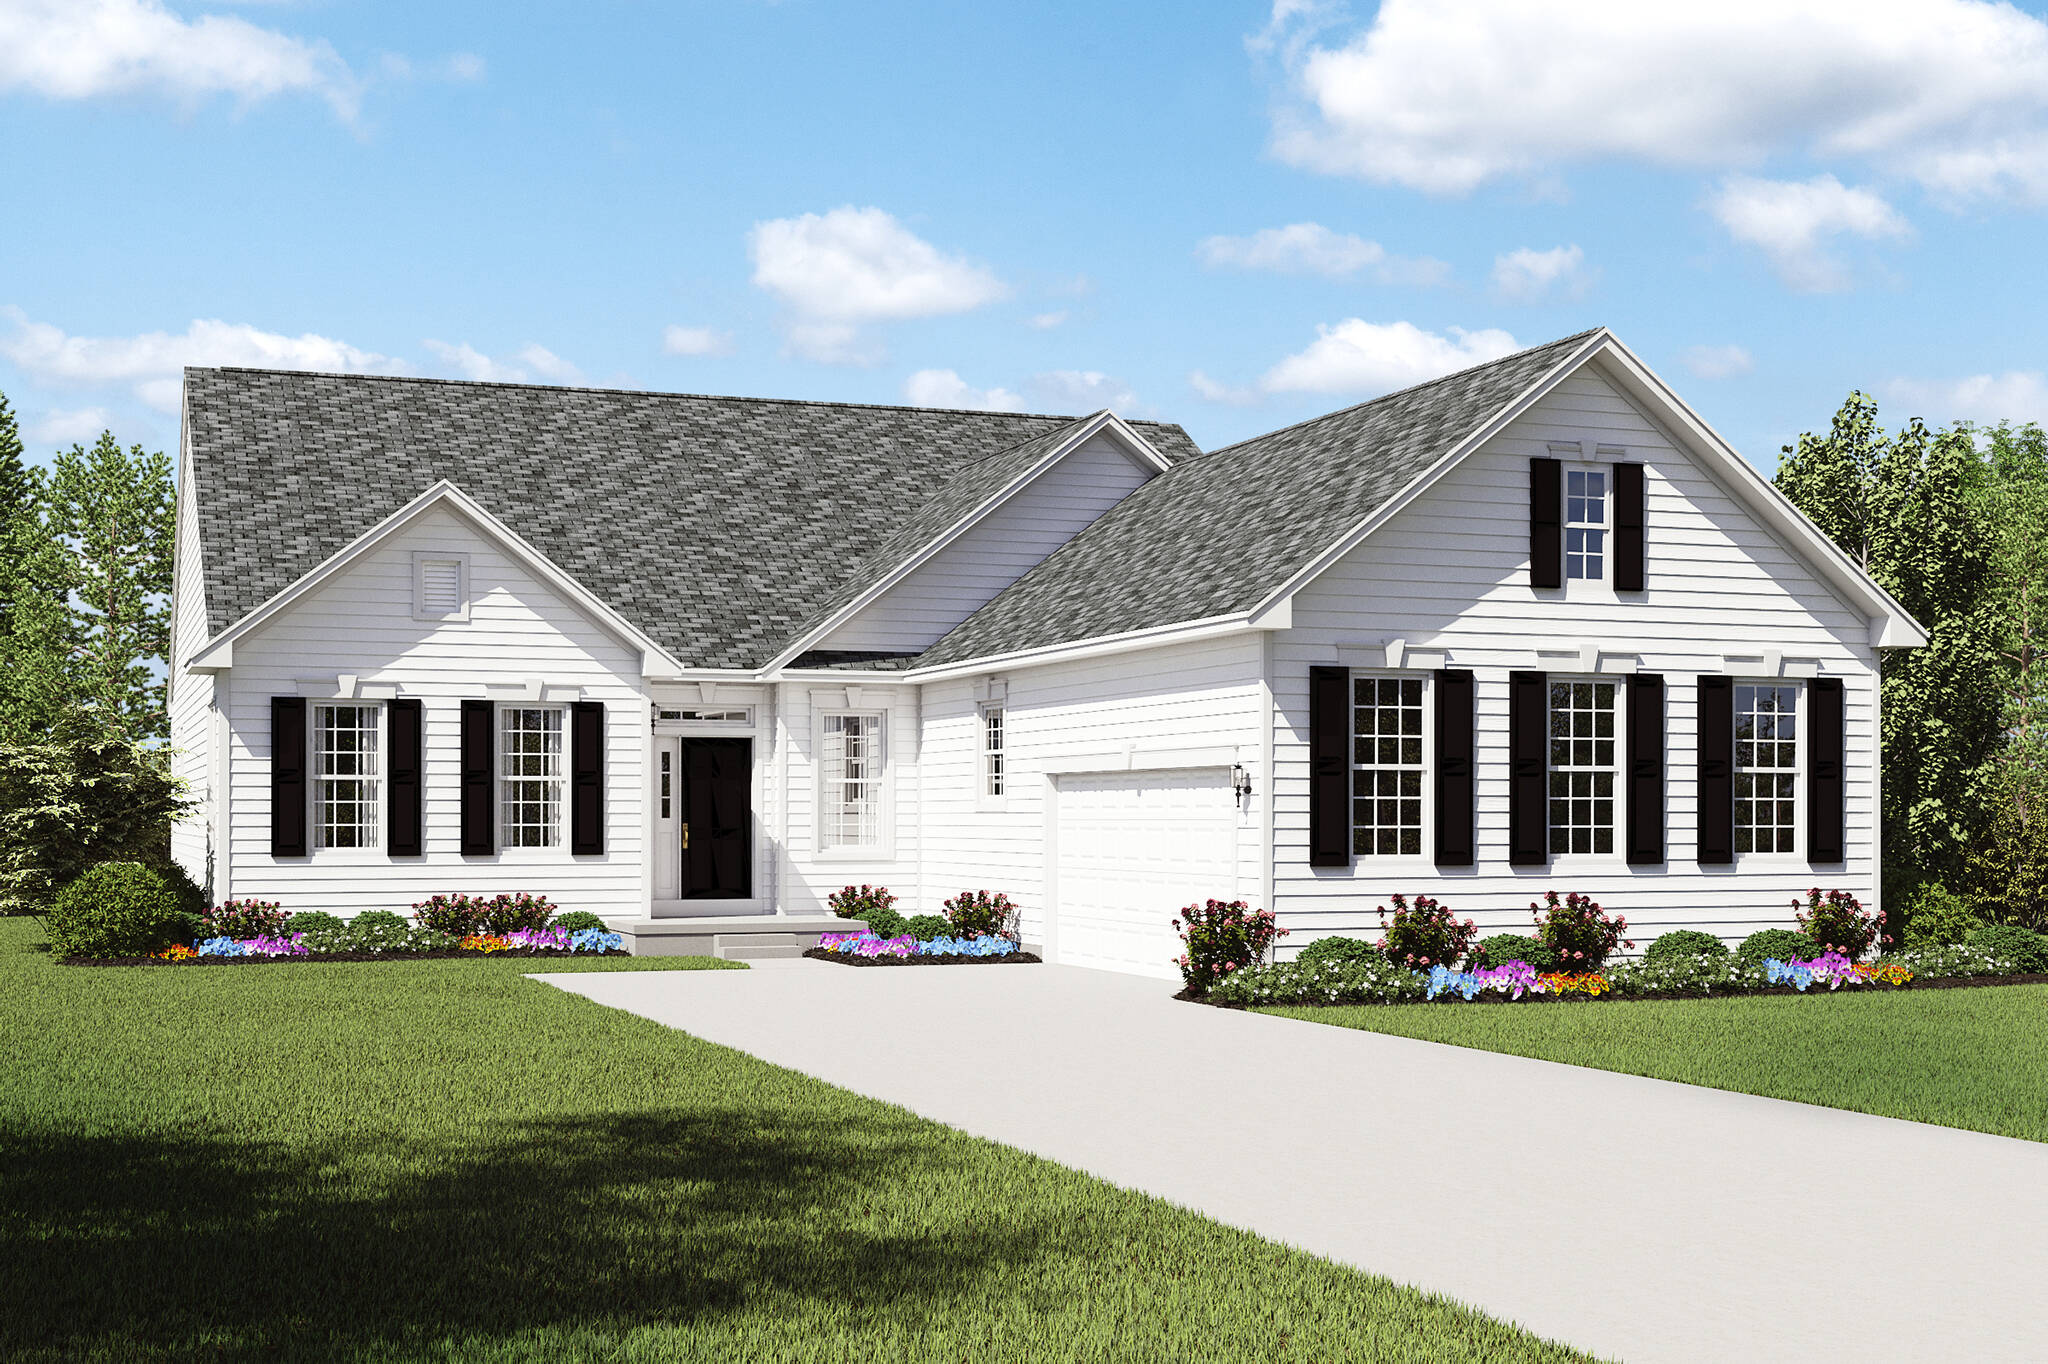 ravenna a preview new ranch home designs cleveland